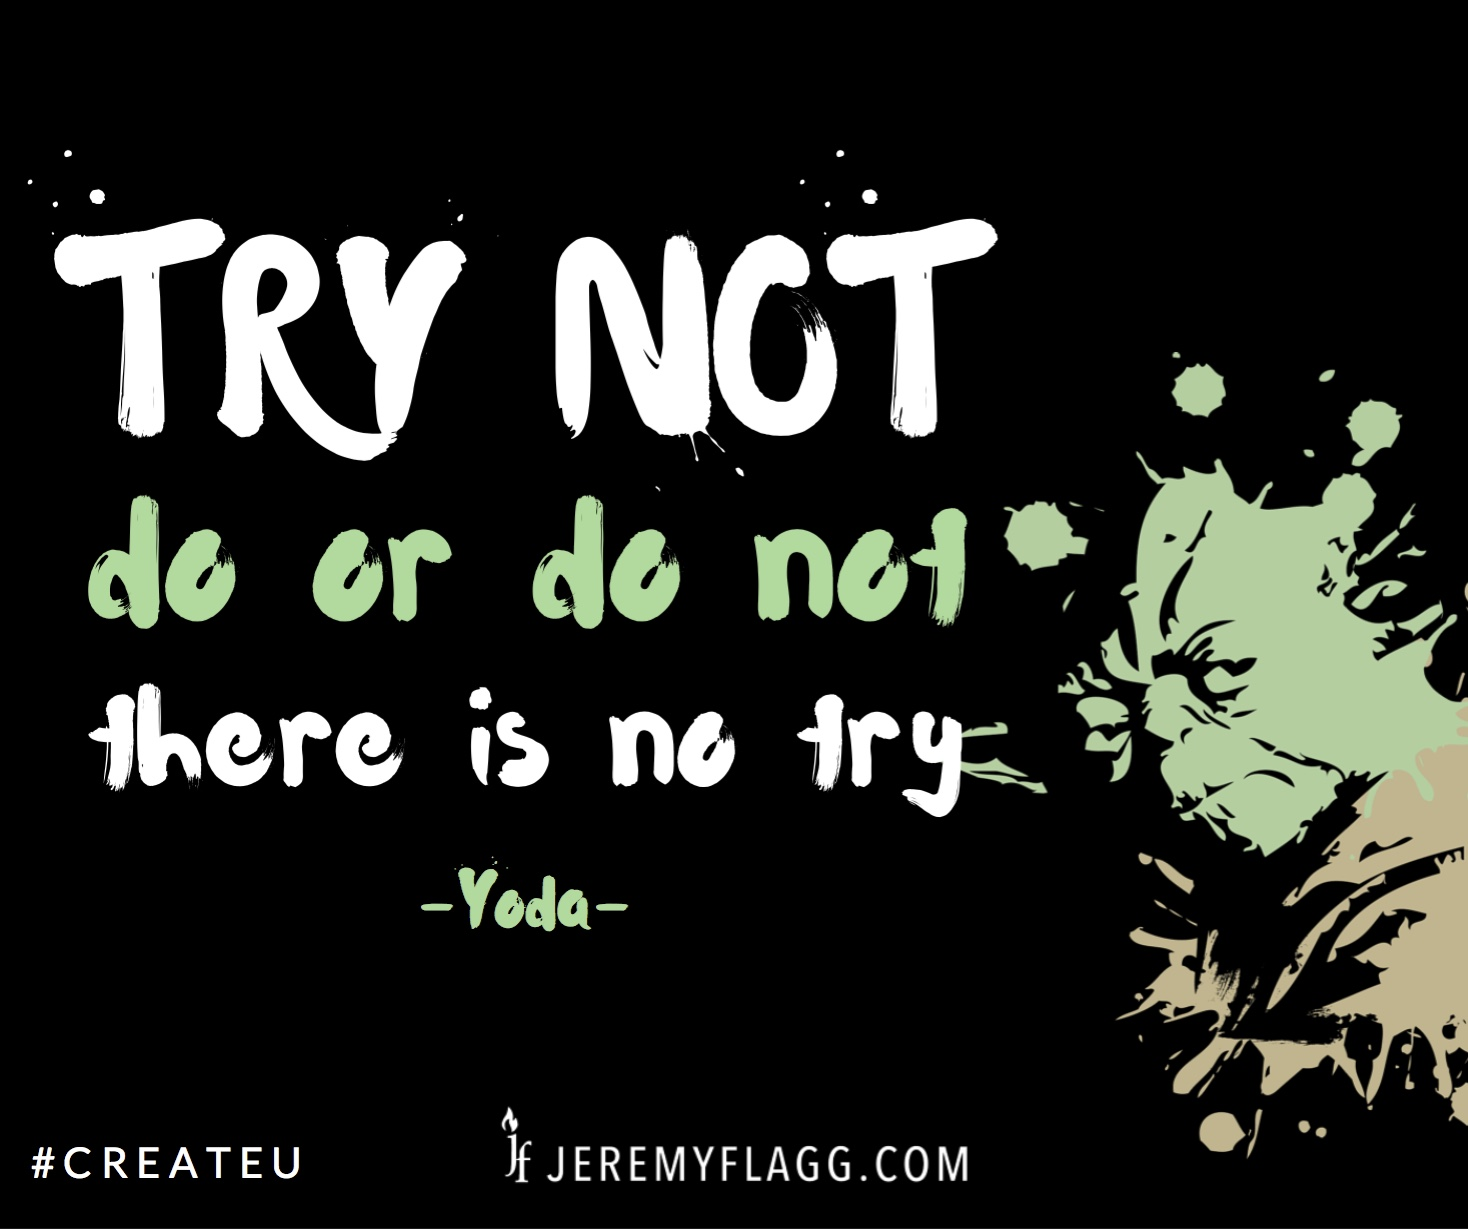 TRY-NOT-Yoda-quote-FB